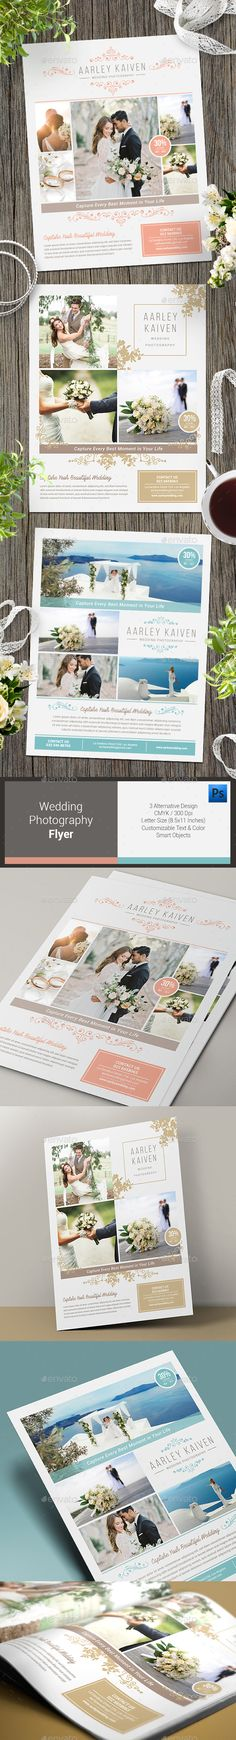 Wedding Photography Flyer by arifpoernomo This Wedding Photography Flyer, can be used for promote your wedding photography business. Very easy to edit text, color and chang